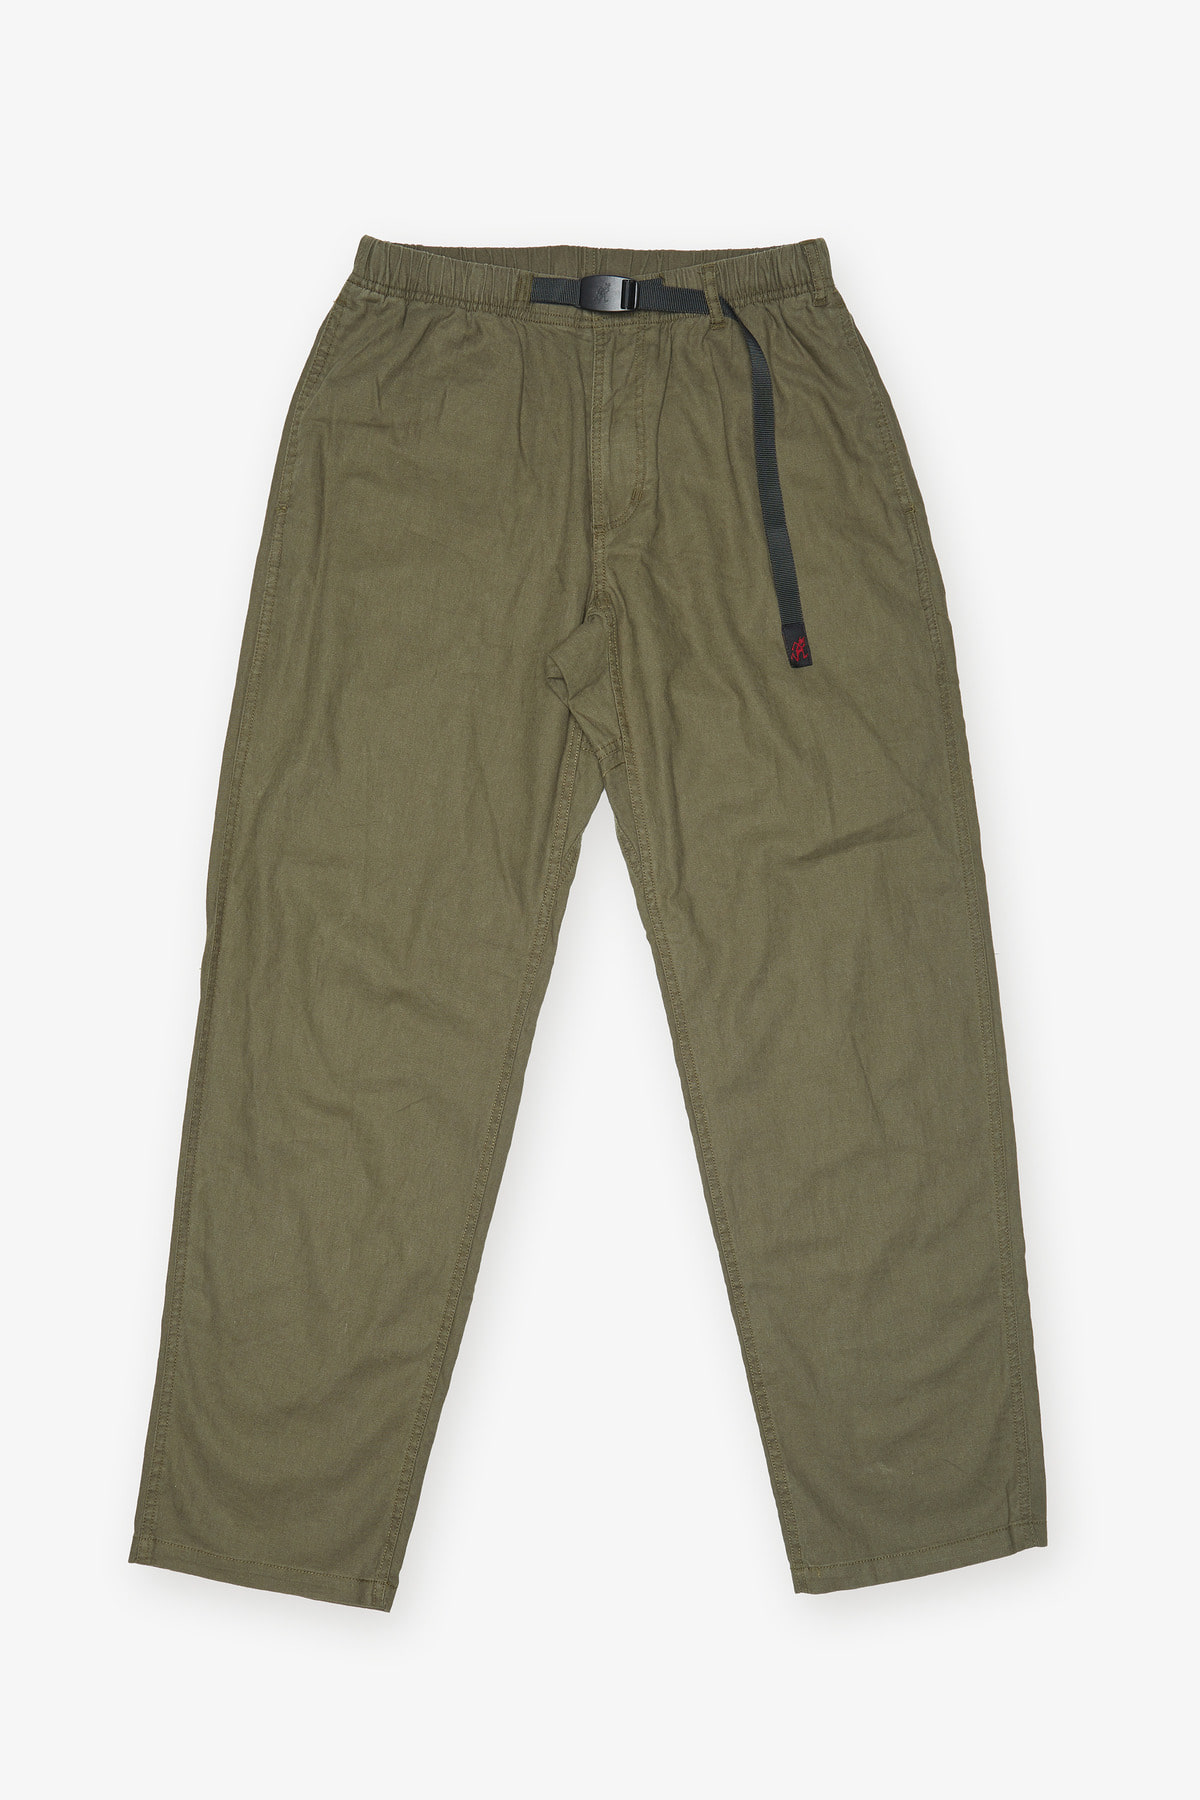 LINEN COTTON GRAMICCI PANTS OLIVE